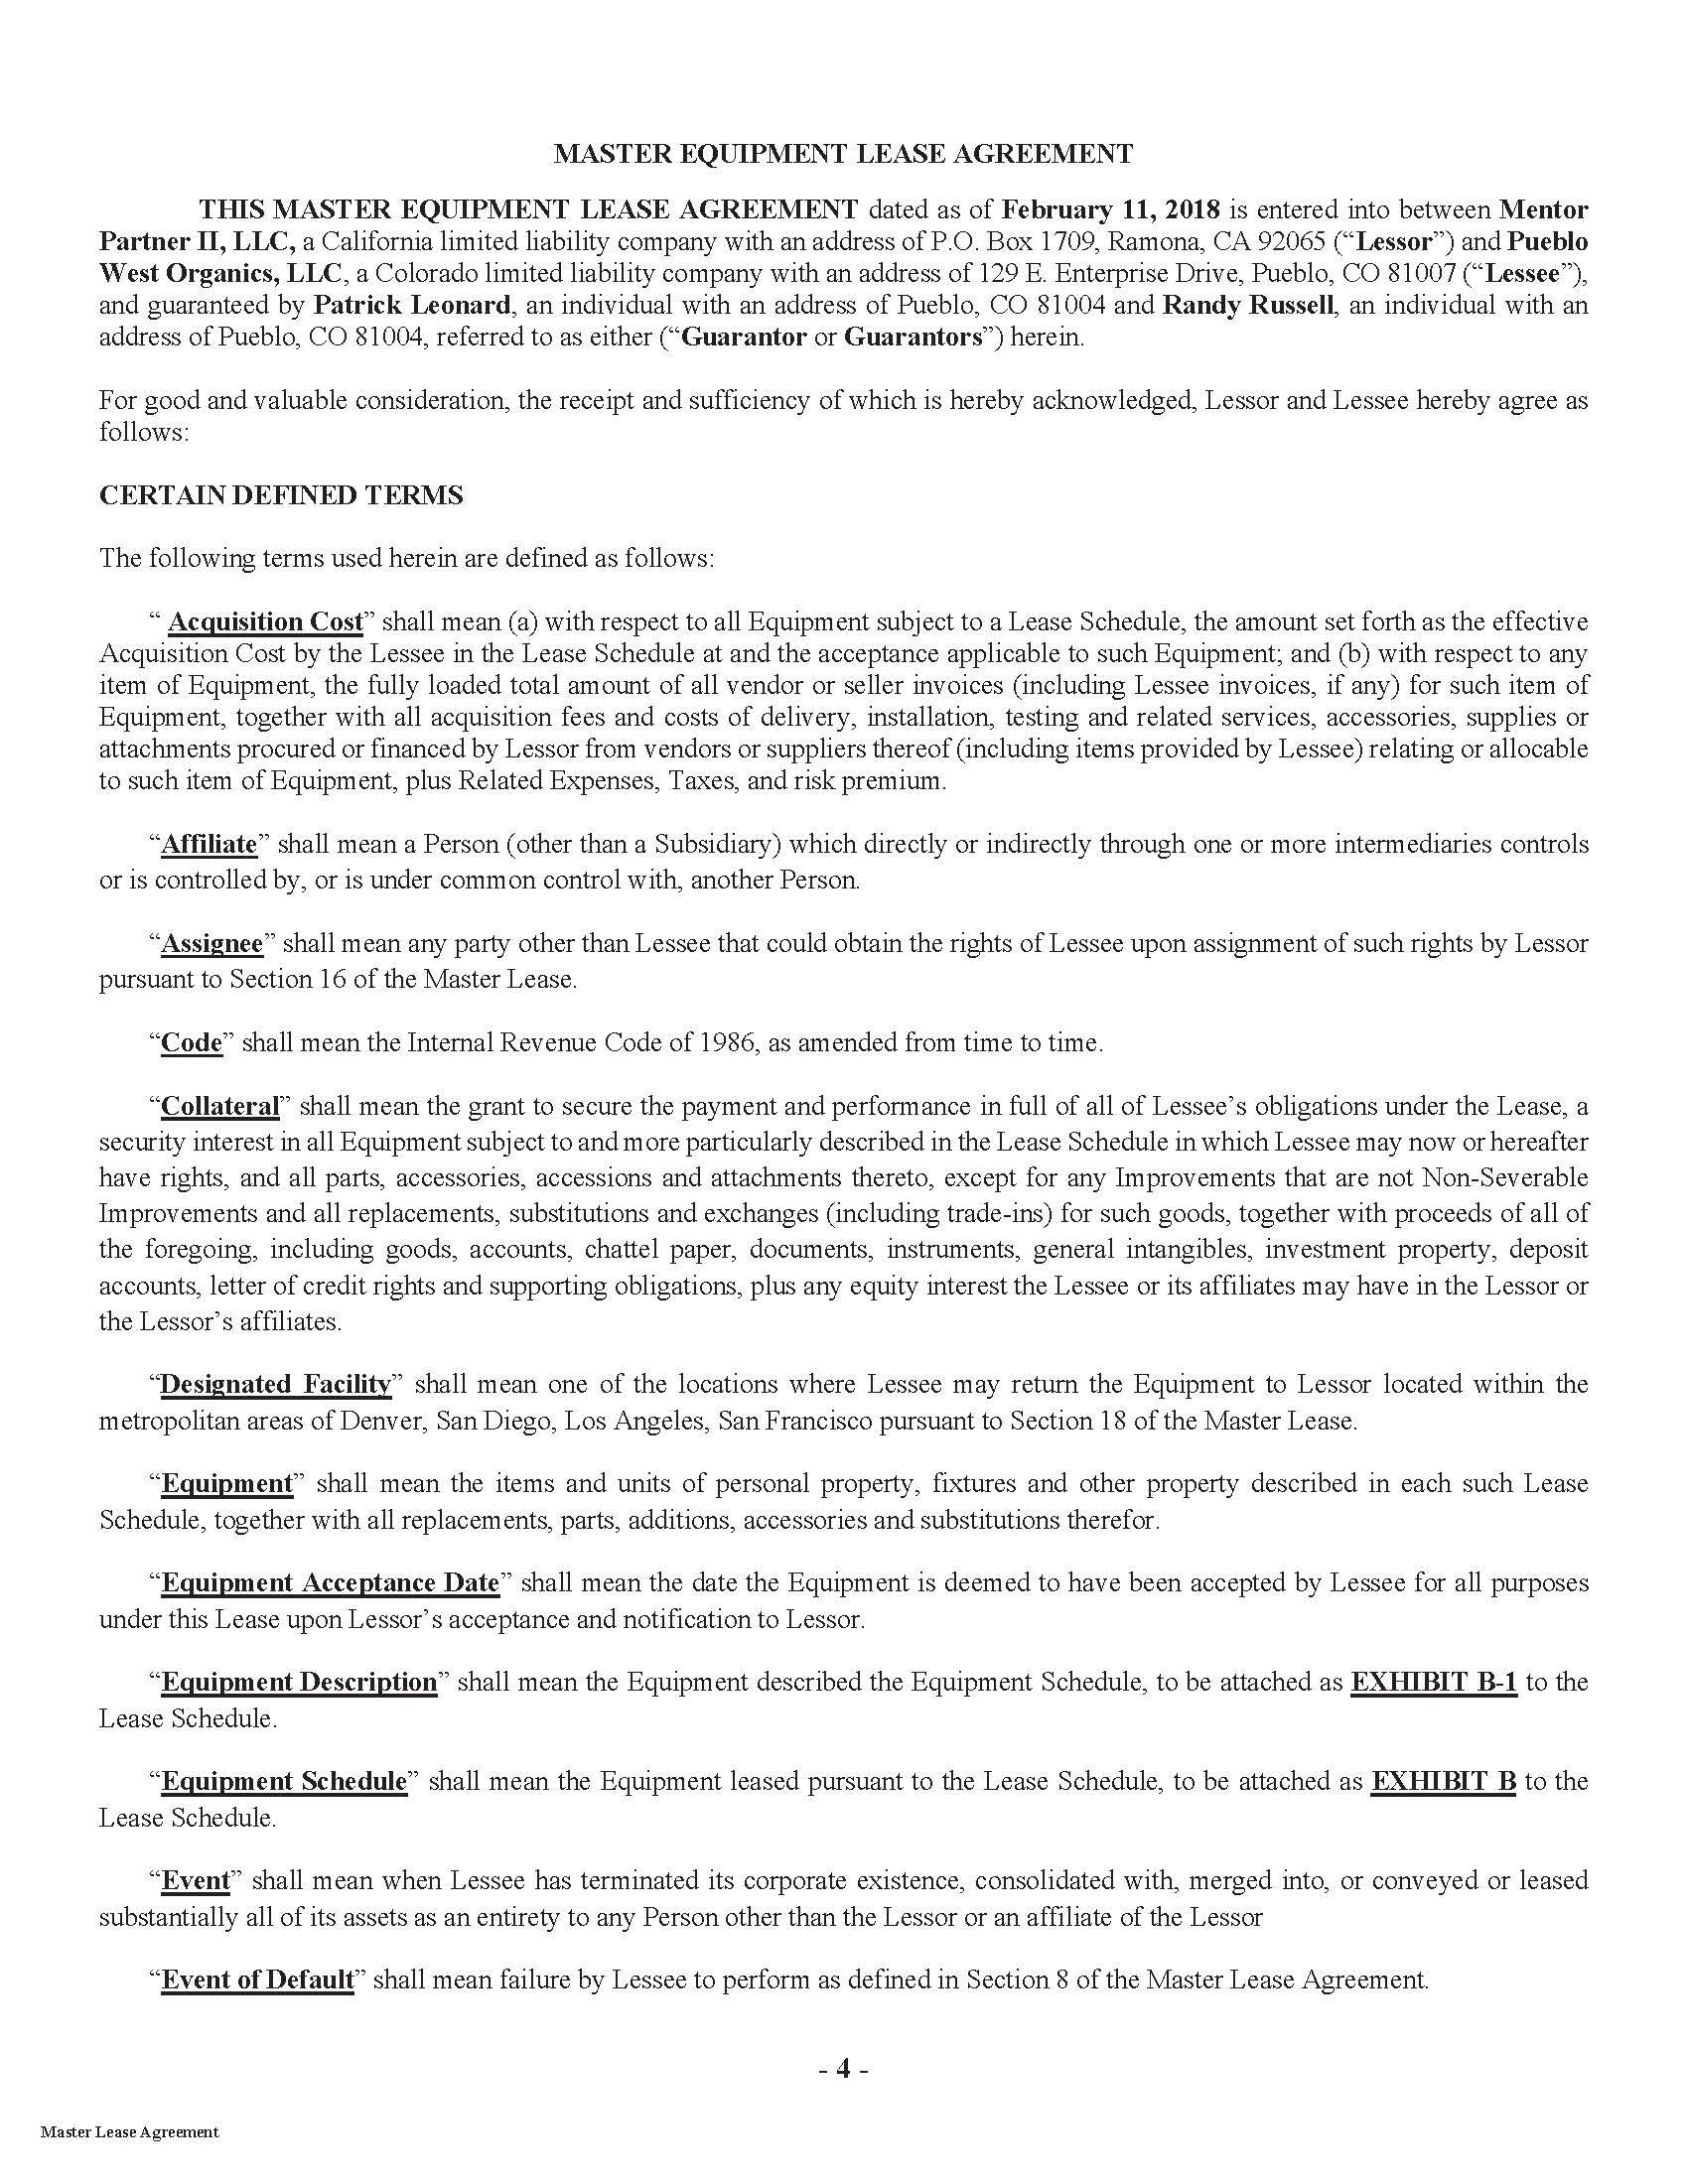 Exhibit 104 Pueblo Master Equipment Lease Agreement With Schedules